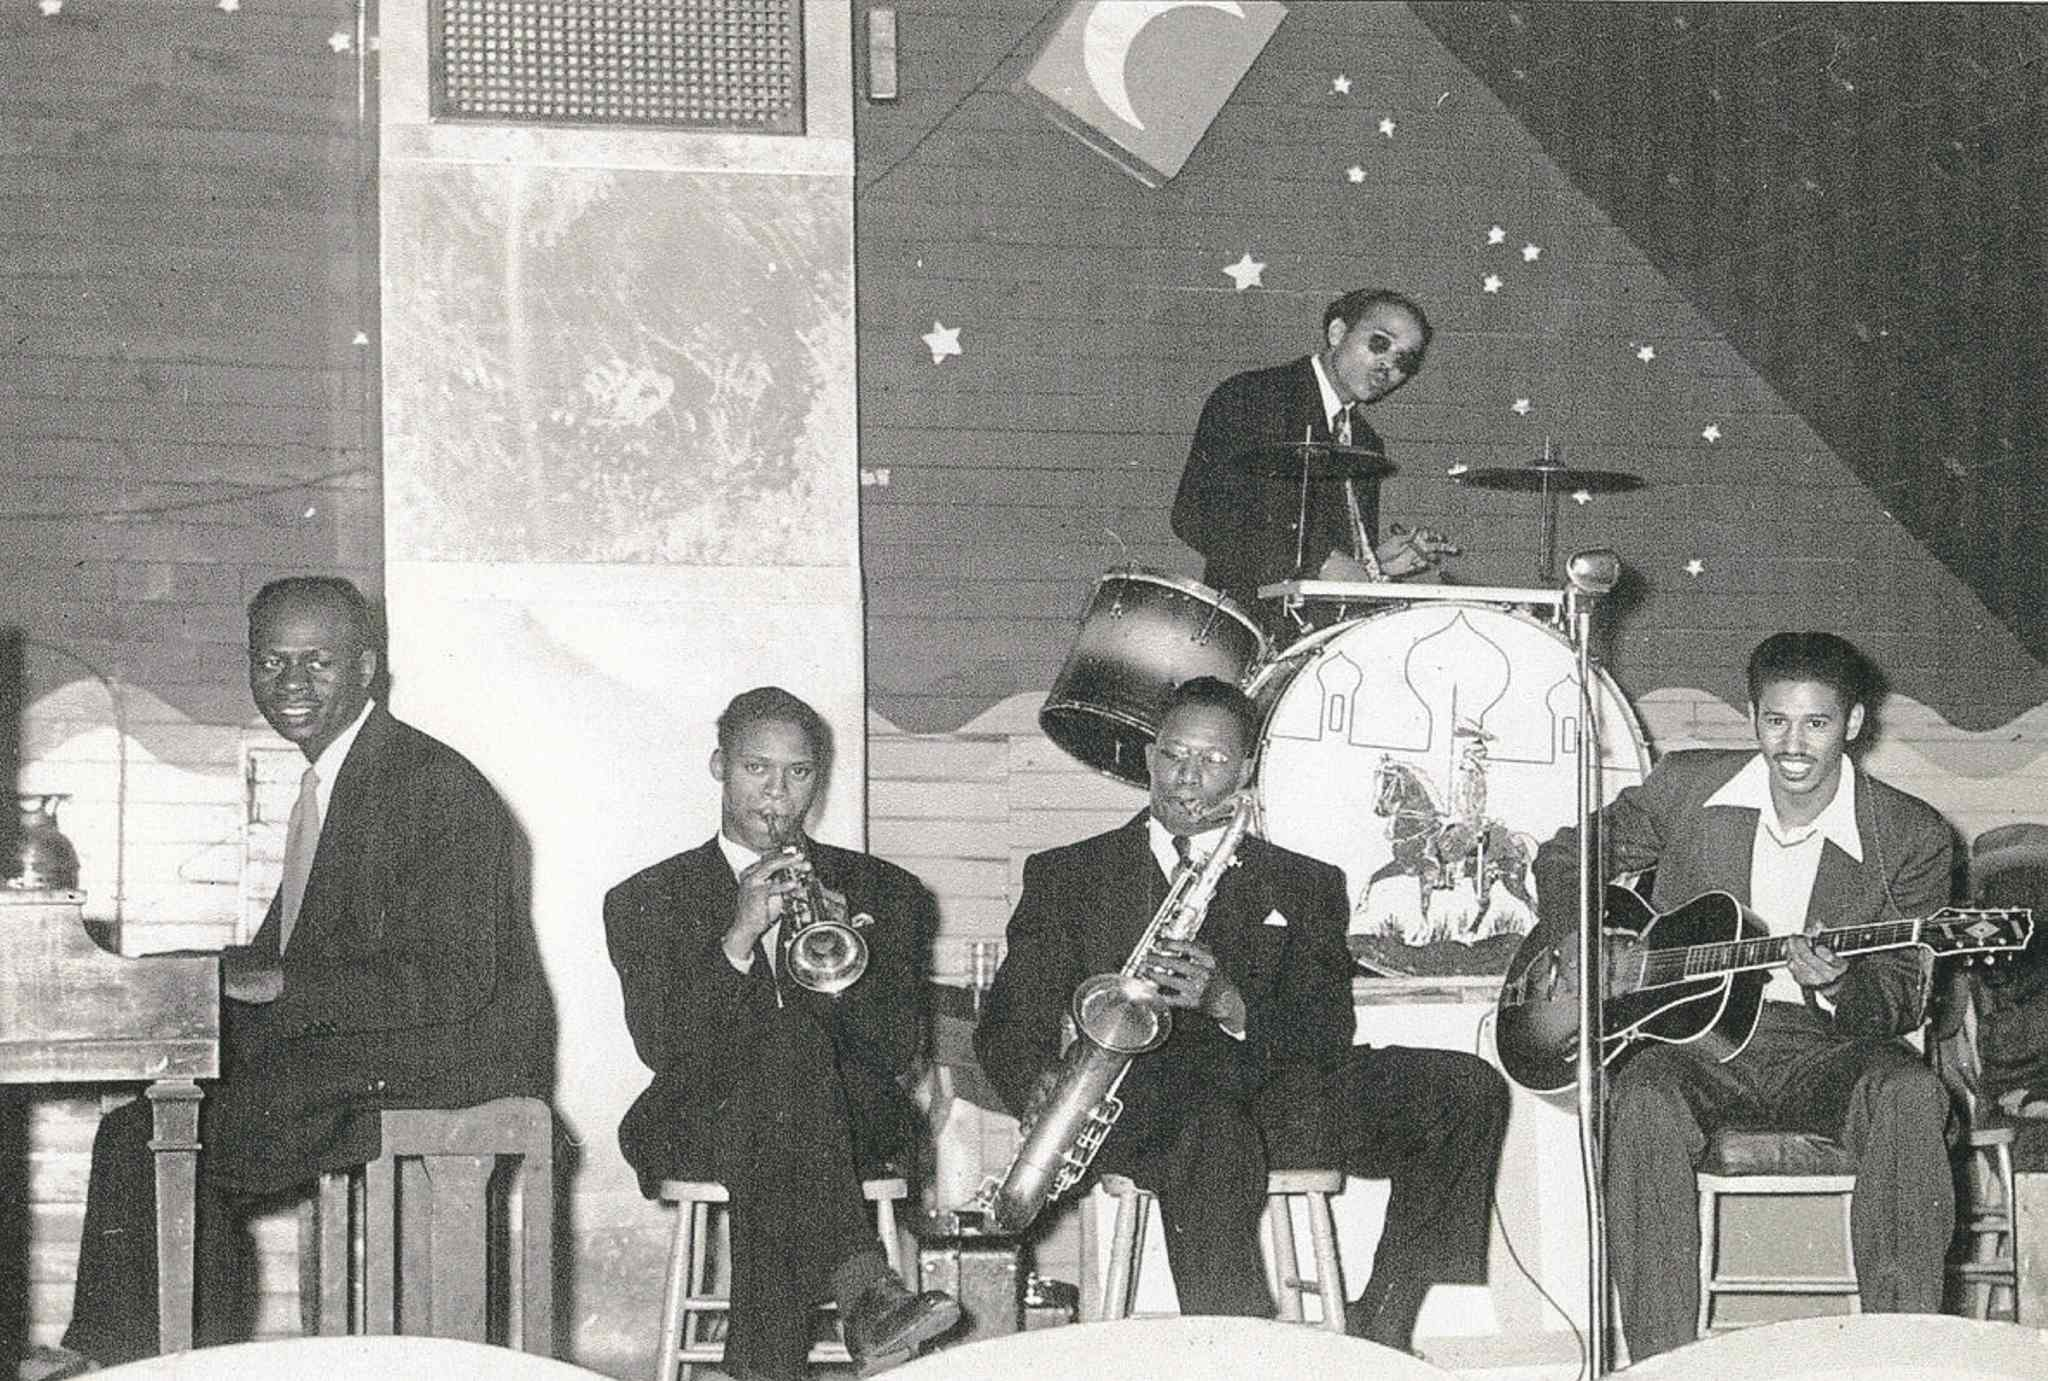 Photo Courtesy Manitoba Music Museum, Owen Clark Collection 